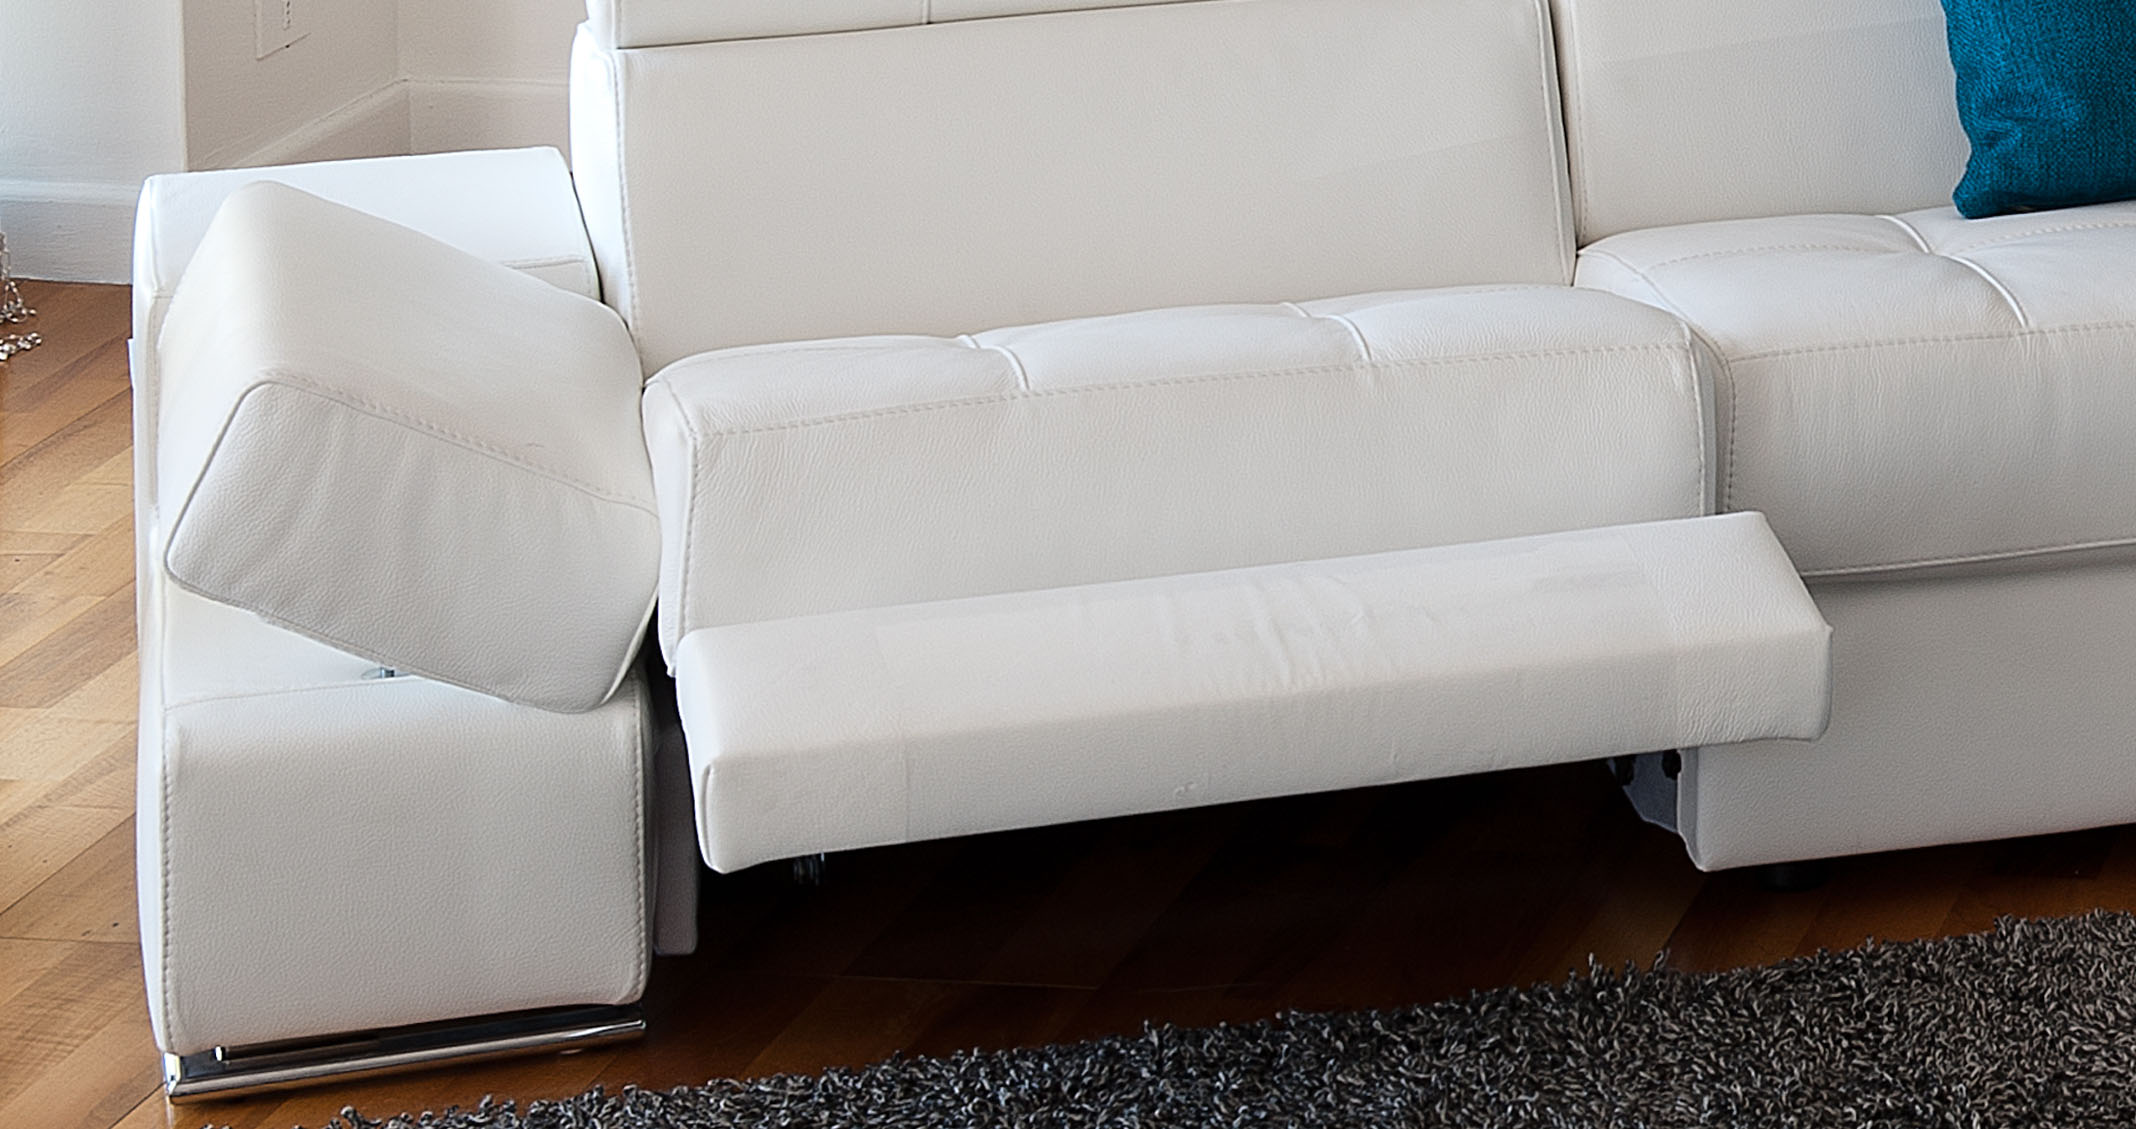 Elegant Curved Sectional Sofa In Leather Moreno Valley